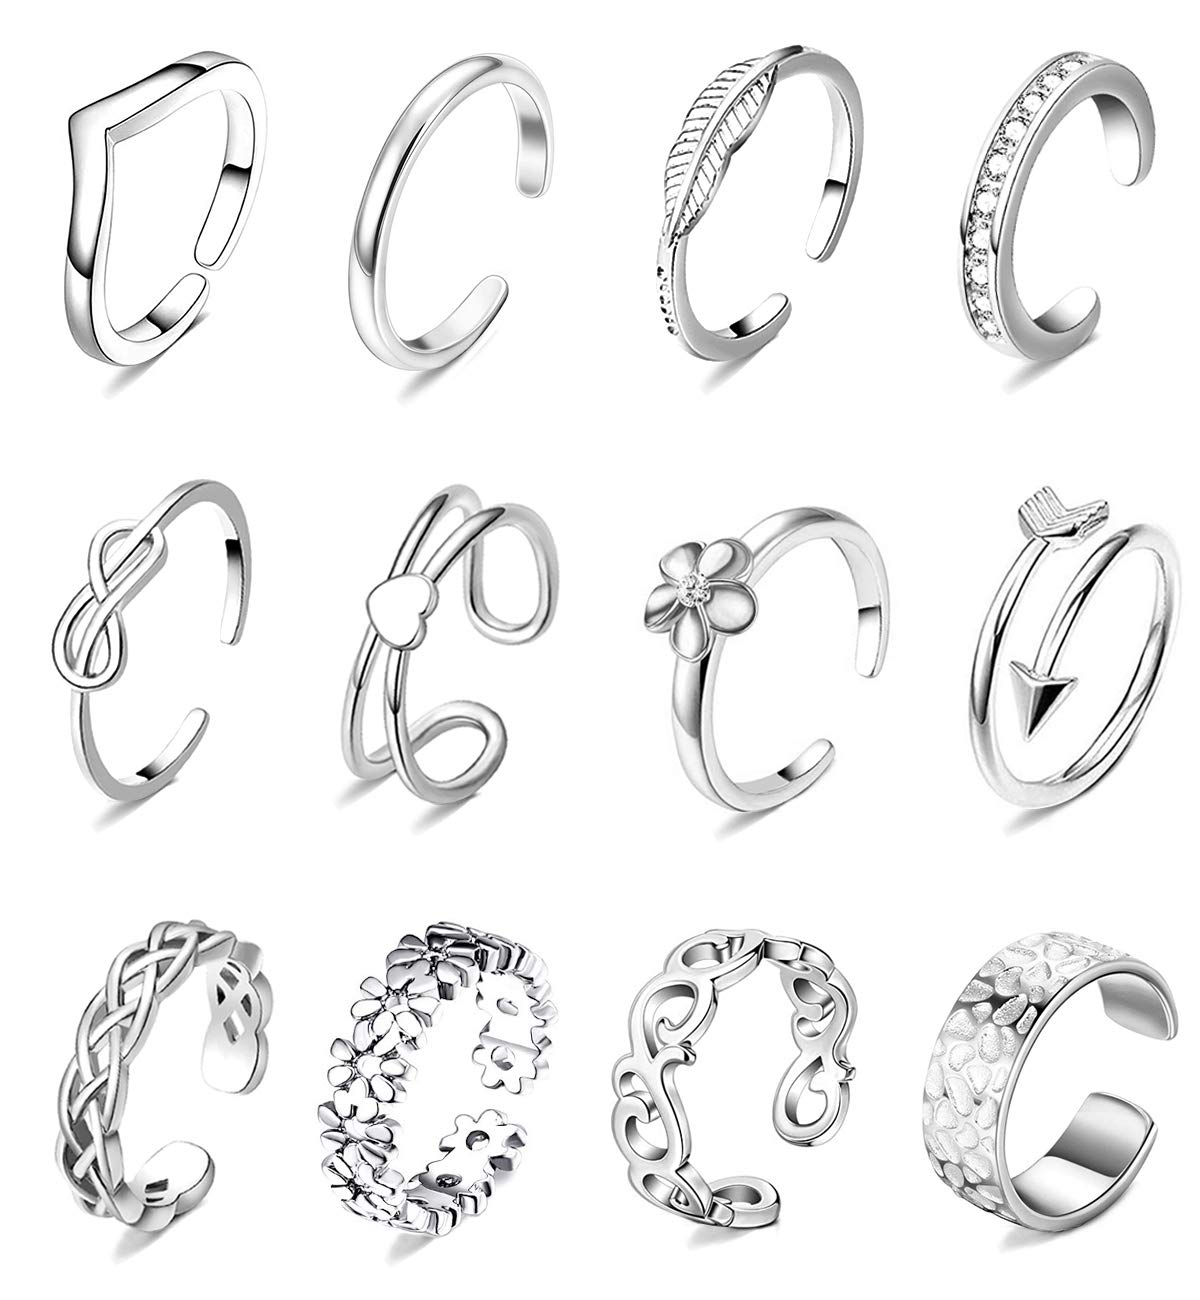 WFYOU 12PCS Adjustable Toe Rings for Women Silver Rose Gold Open Toe Ring Set Beach Foot Jewelry Tail Ring